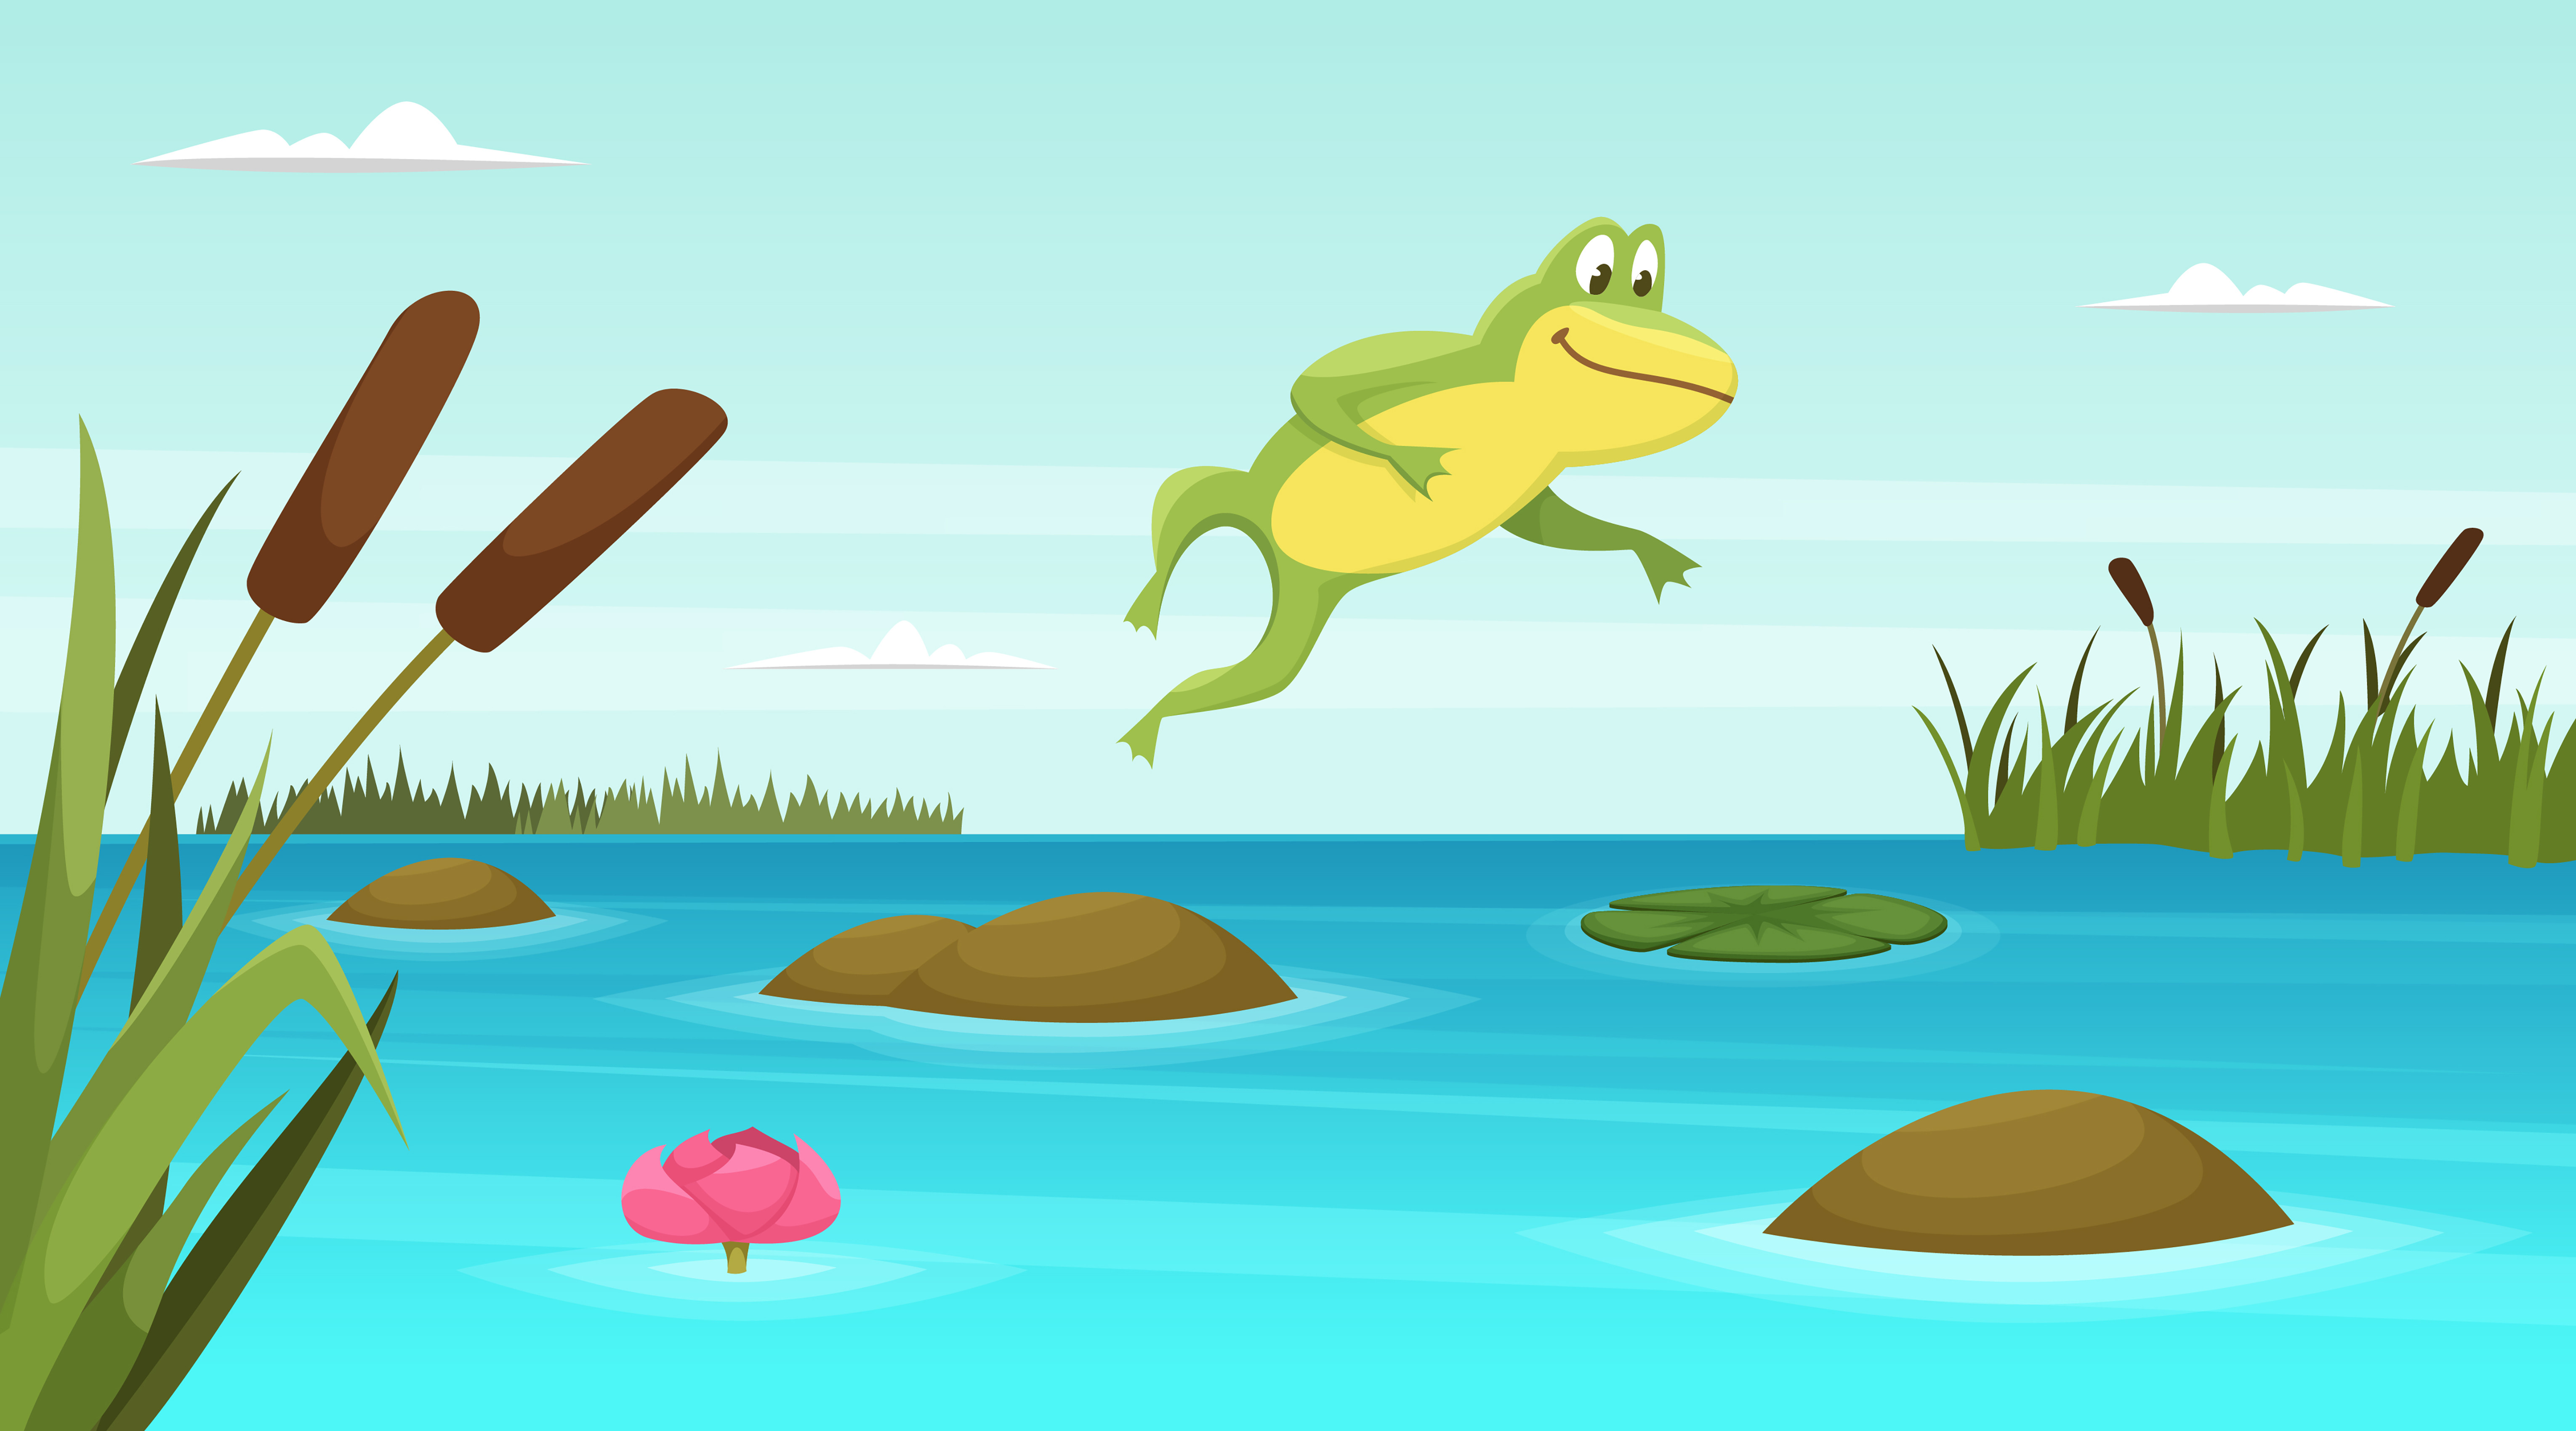 Biology Life Cycle Of A Frog Level 1 Activity For Kids